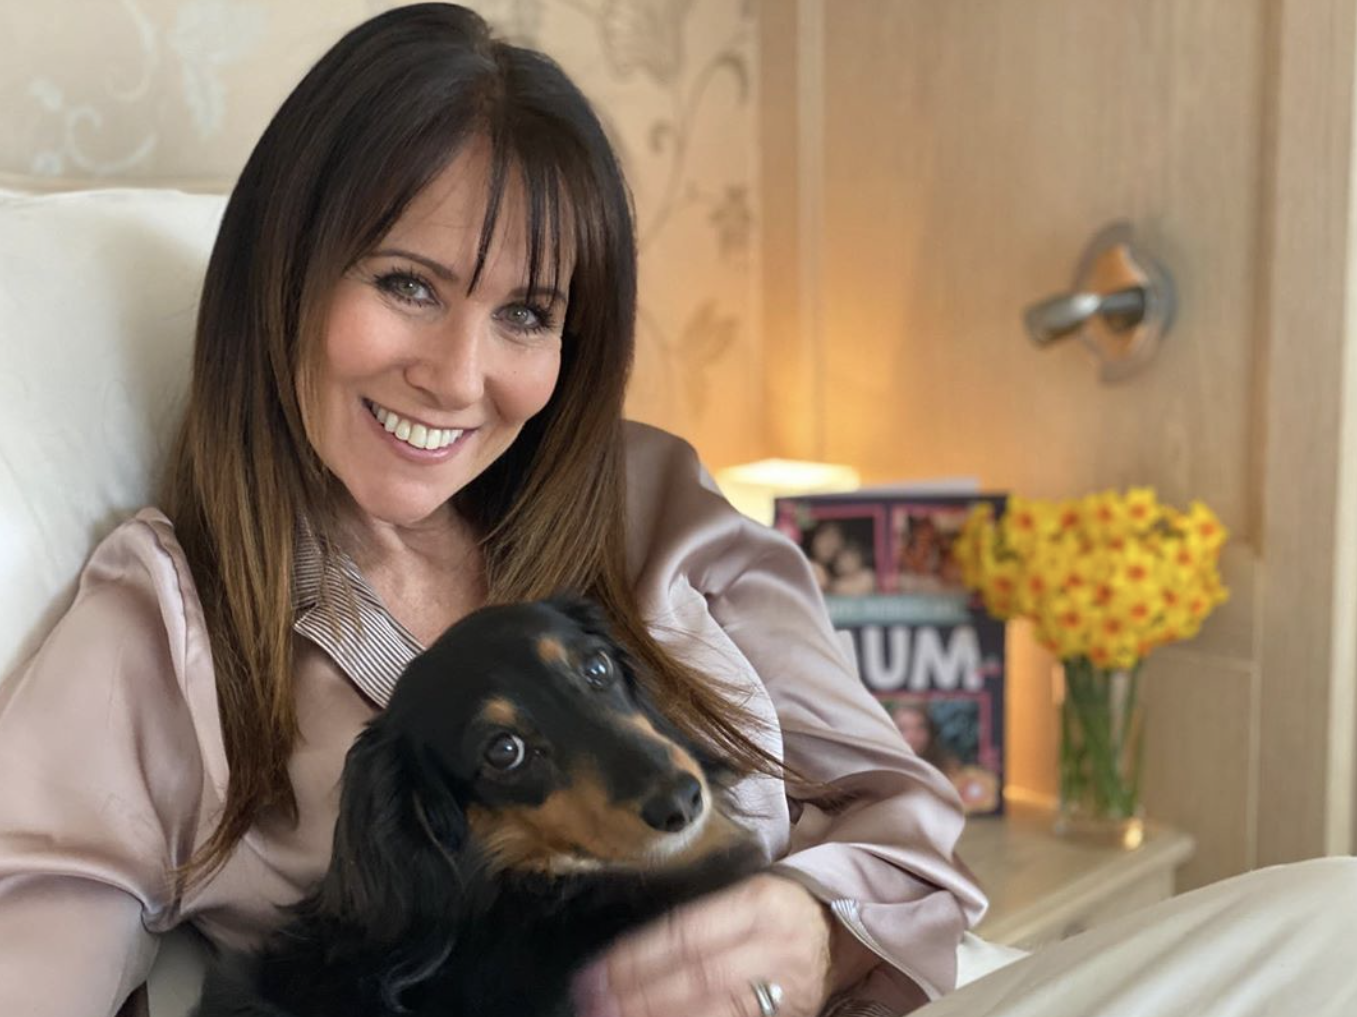 Linda Lusardi says it's 'good to be home' after coronavirus battle